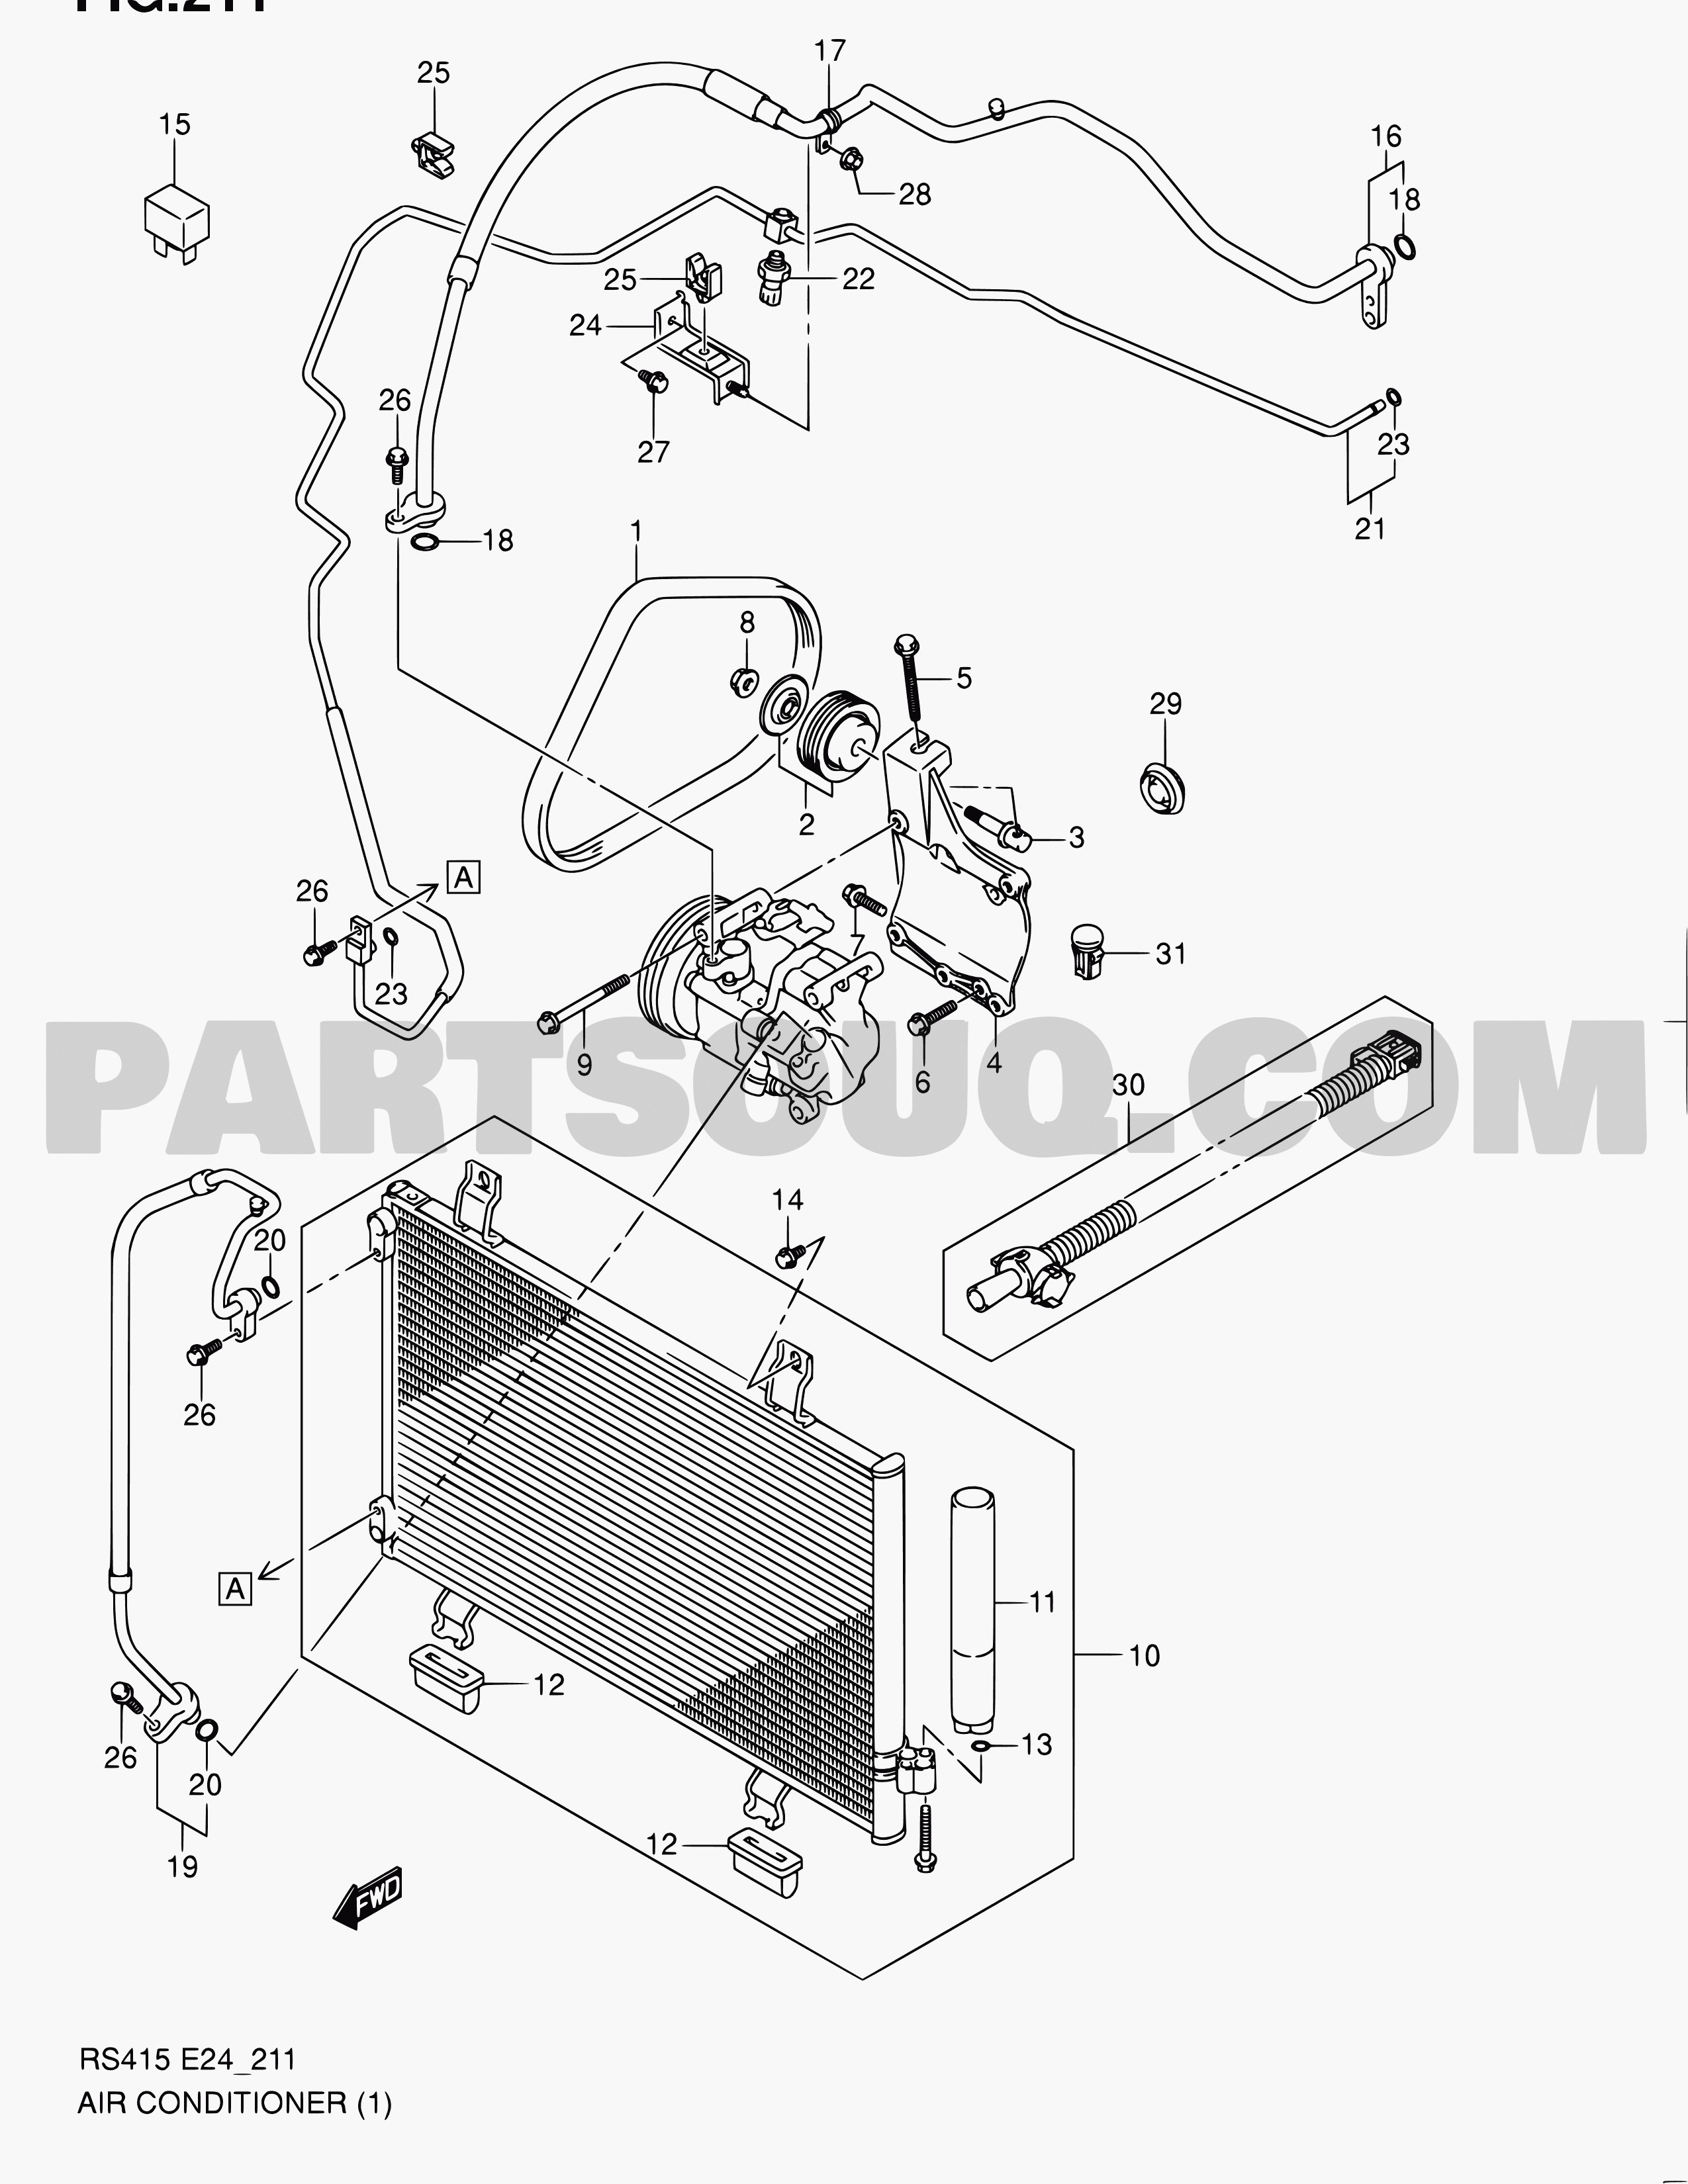 car air conditioning parts diagram 2002 ford taurus radio stereo wiring auto my